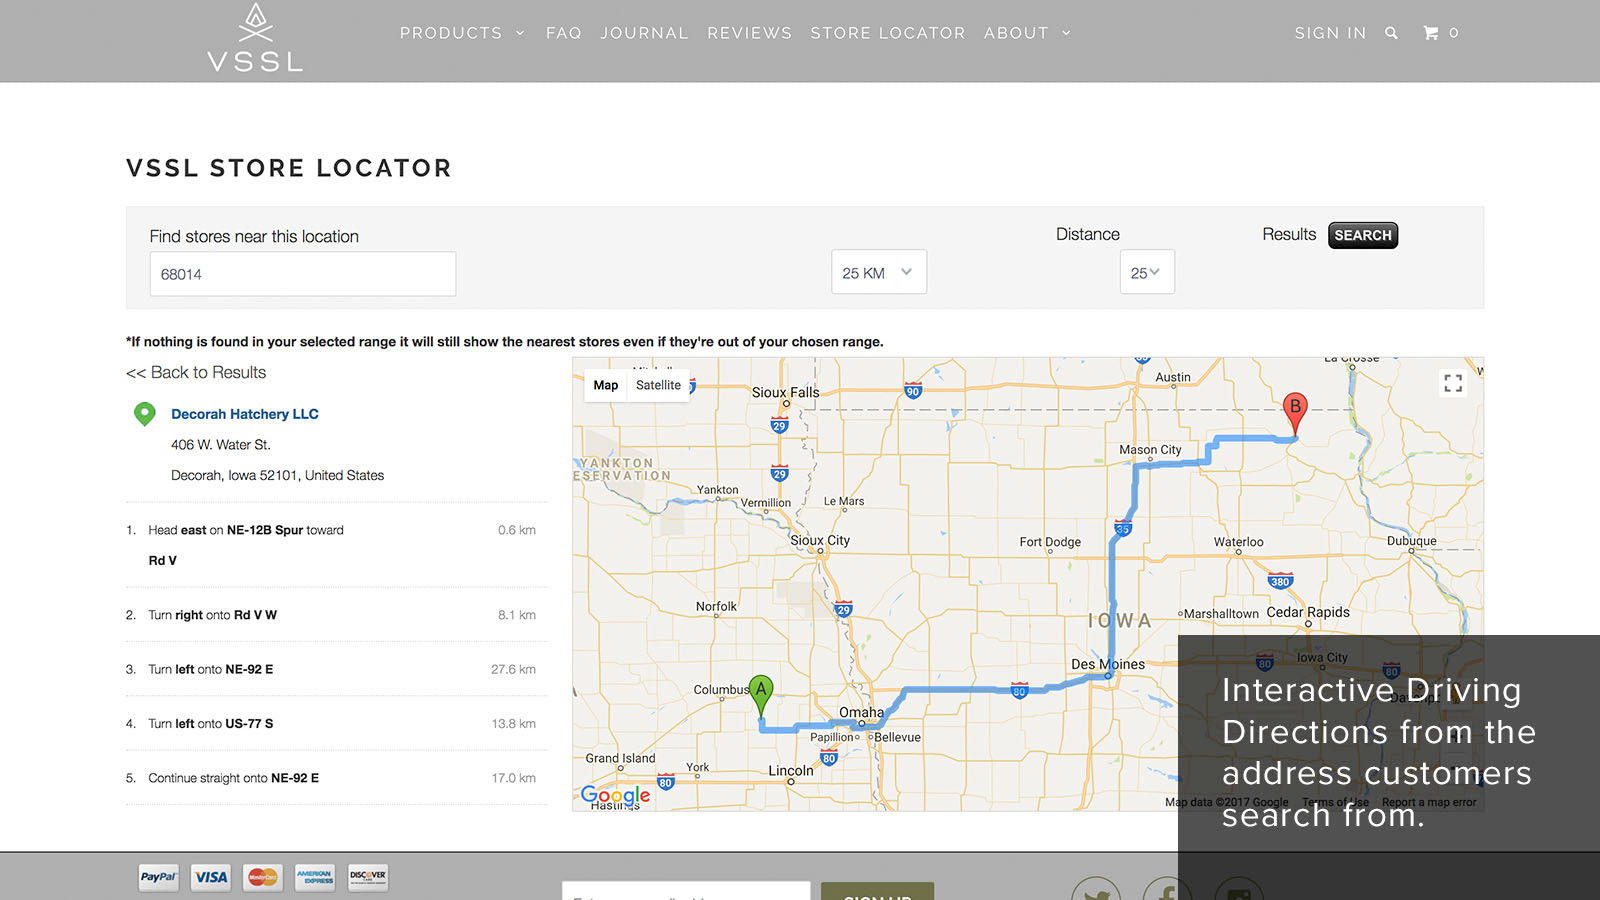 Interactive driving directions